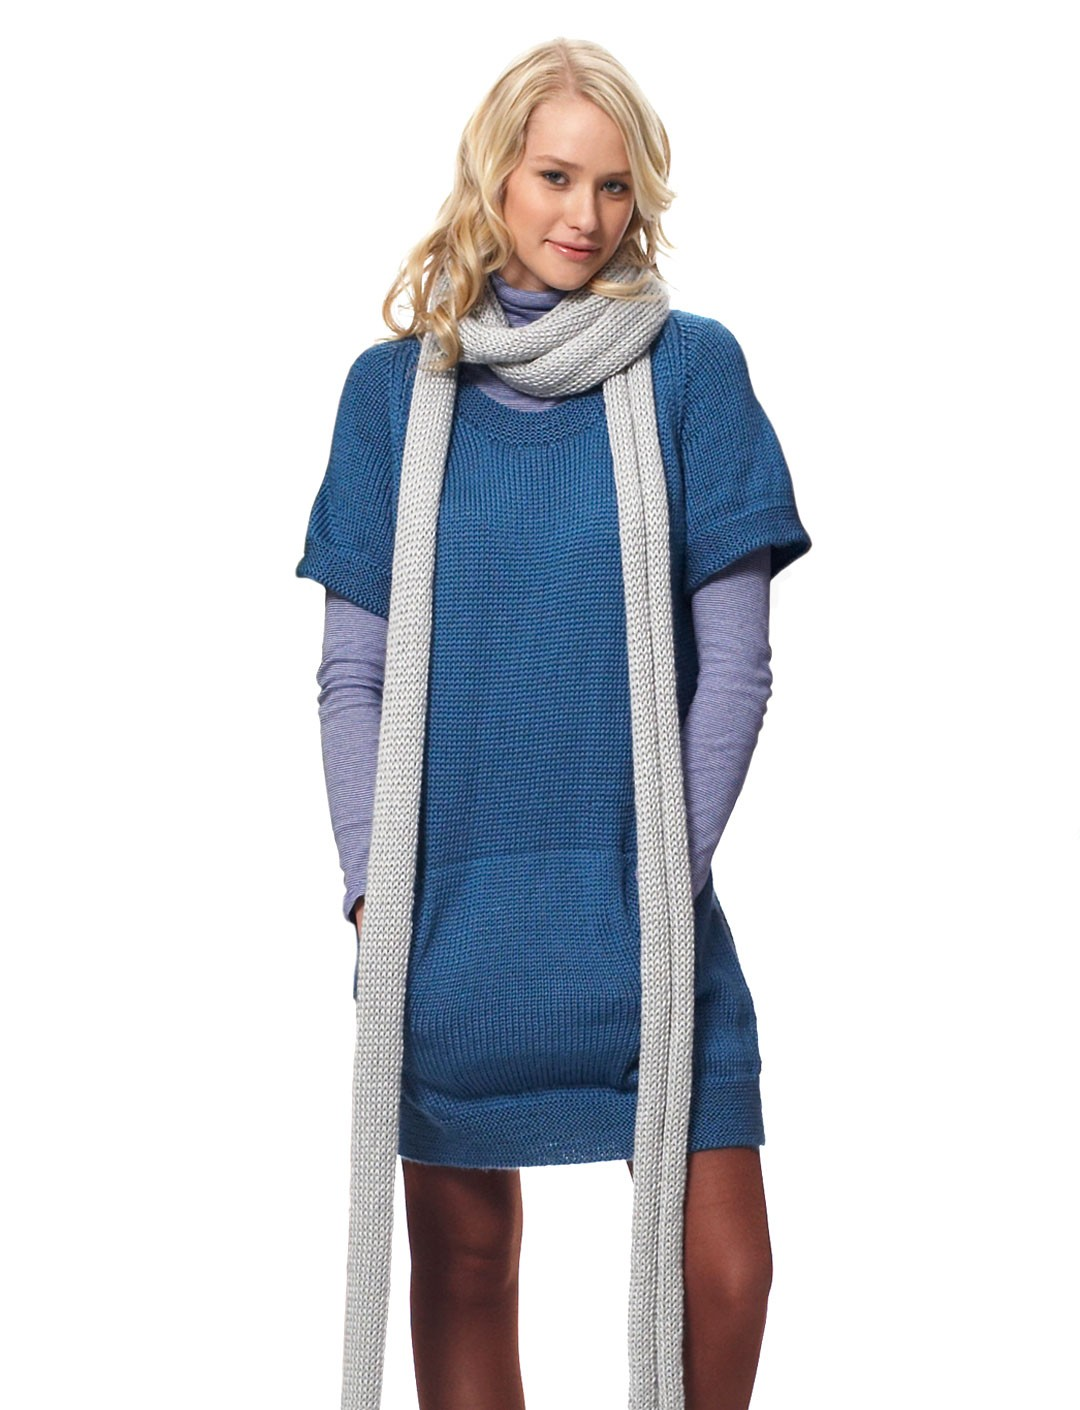 Knitting Pattern For Dressy Scarf : Bernat Dress with Kangaroo Pockets and Scarf, Knit Pattern Yarnspirations